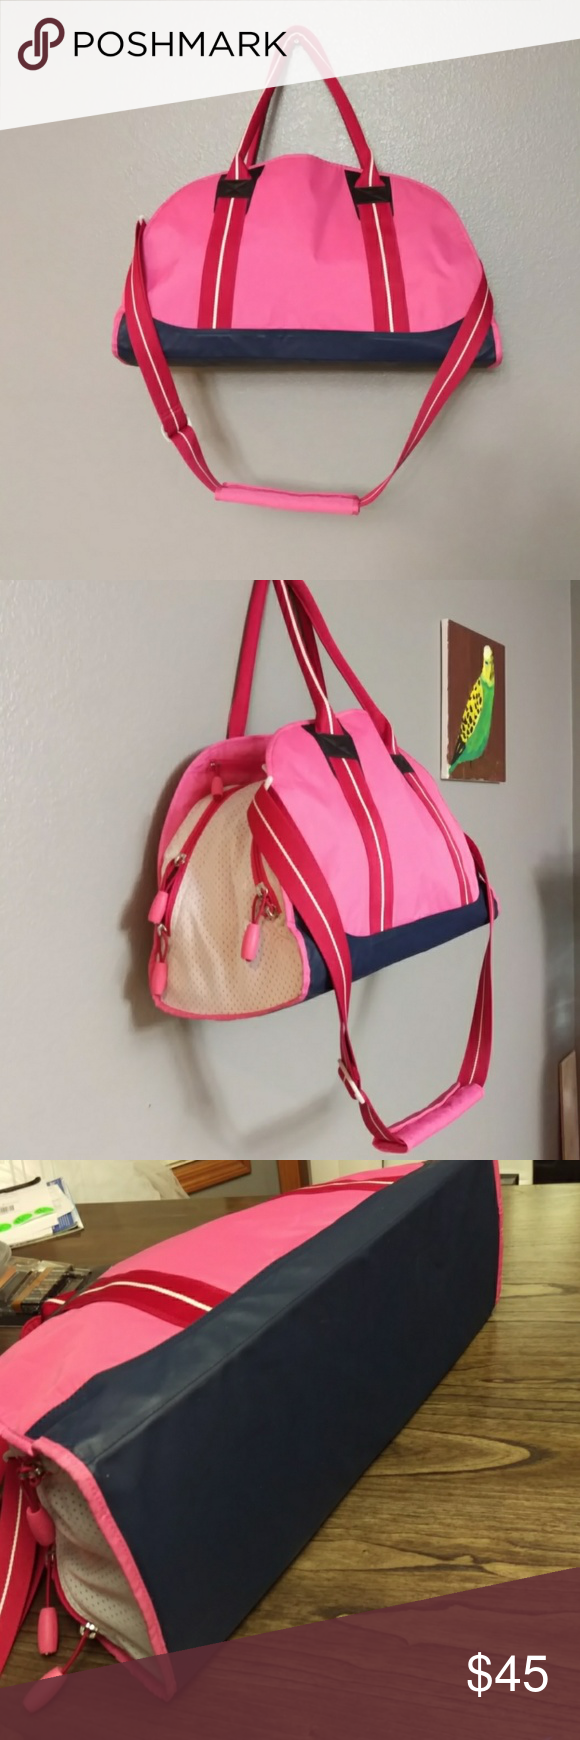 Hot Pink Nike Gym Bag  c9c3fe179